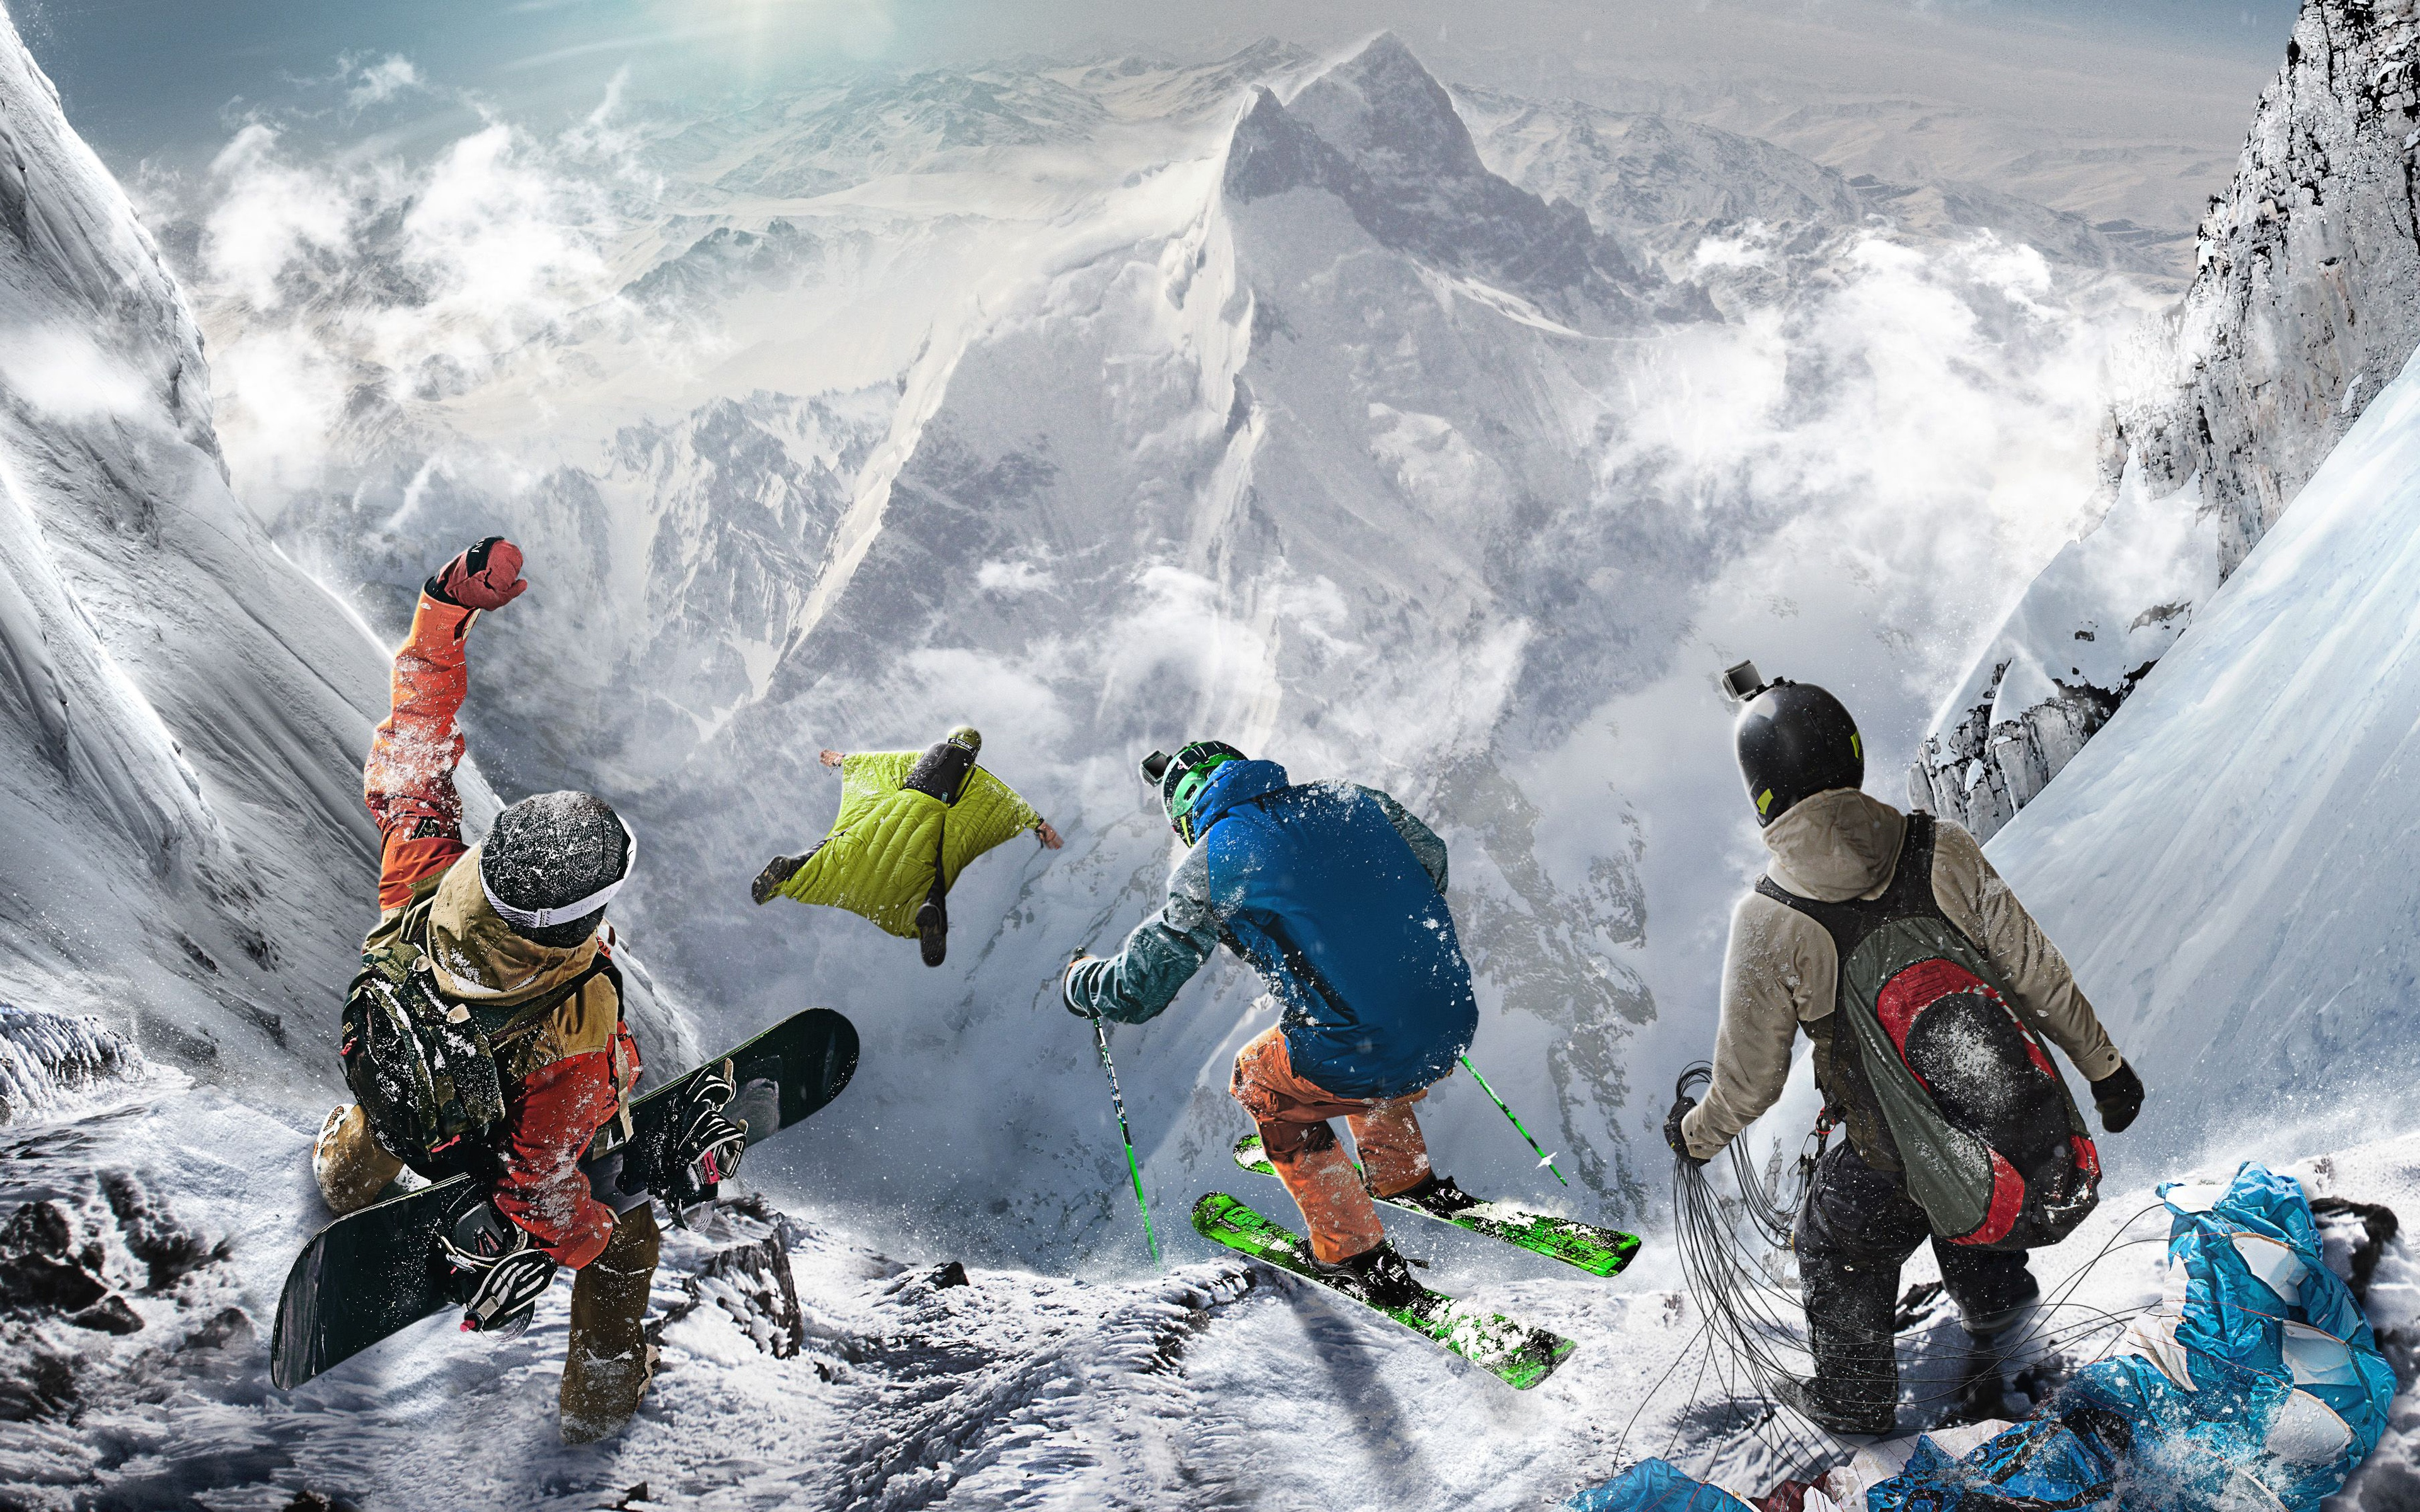 Steep Extreme Sport Game 4k Wallpapers In Jpg Format For Free Download